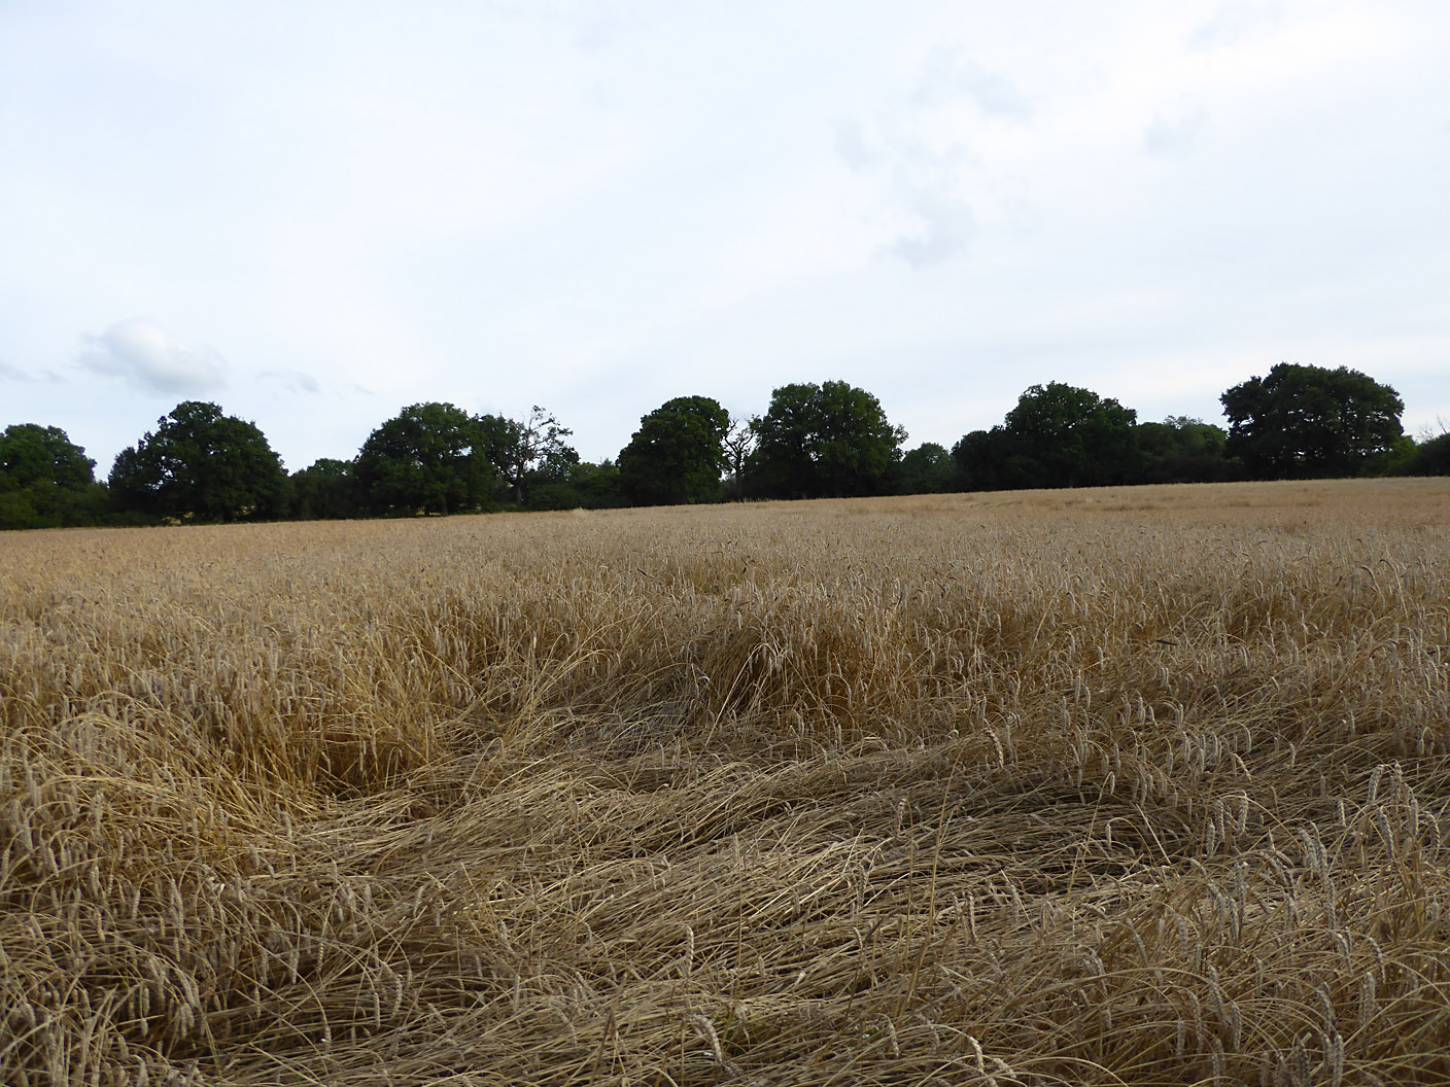 some lodging on Kent Old Hoary, farm review pre-harvest '17 - 6:28pm&nbsp;1<sup>st</sup>&nbsp;Aug.&nbsp;'17  <a href='http://maps.google.com/?t=h&q=51.209278,-0.085778&z=18&output=embed' target=_blank><img src='http://www.brockwell-bake.org.uk/img/marker.png' style='border:none;vertical-align:top' height=16px></a>